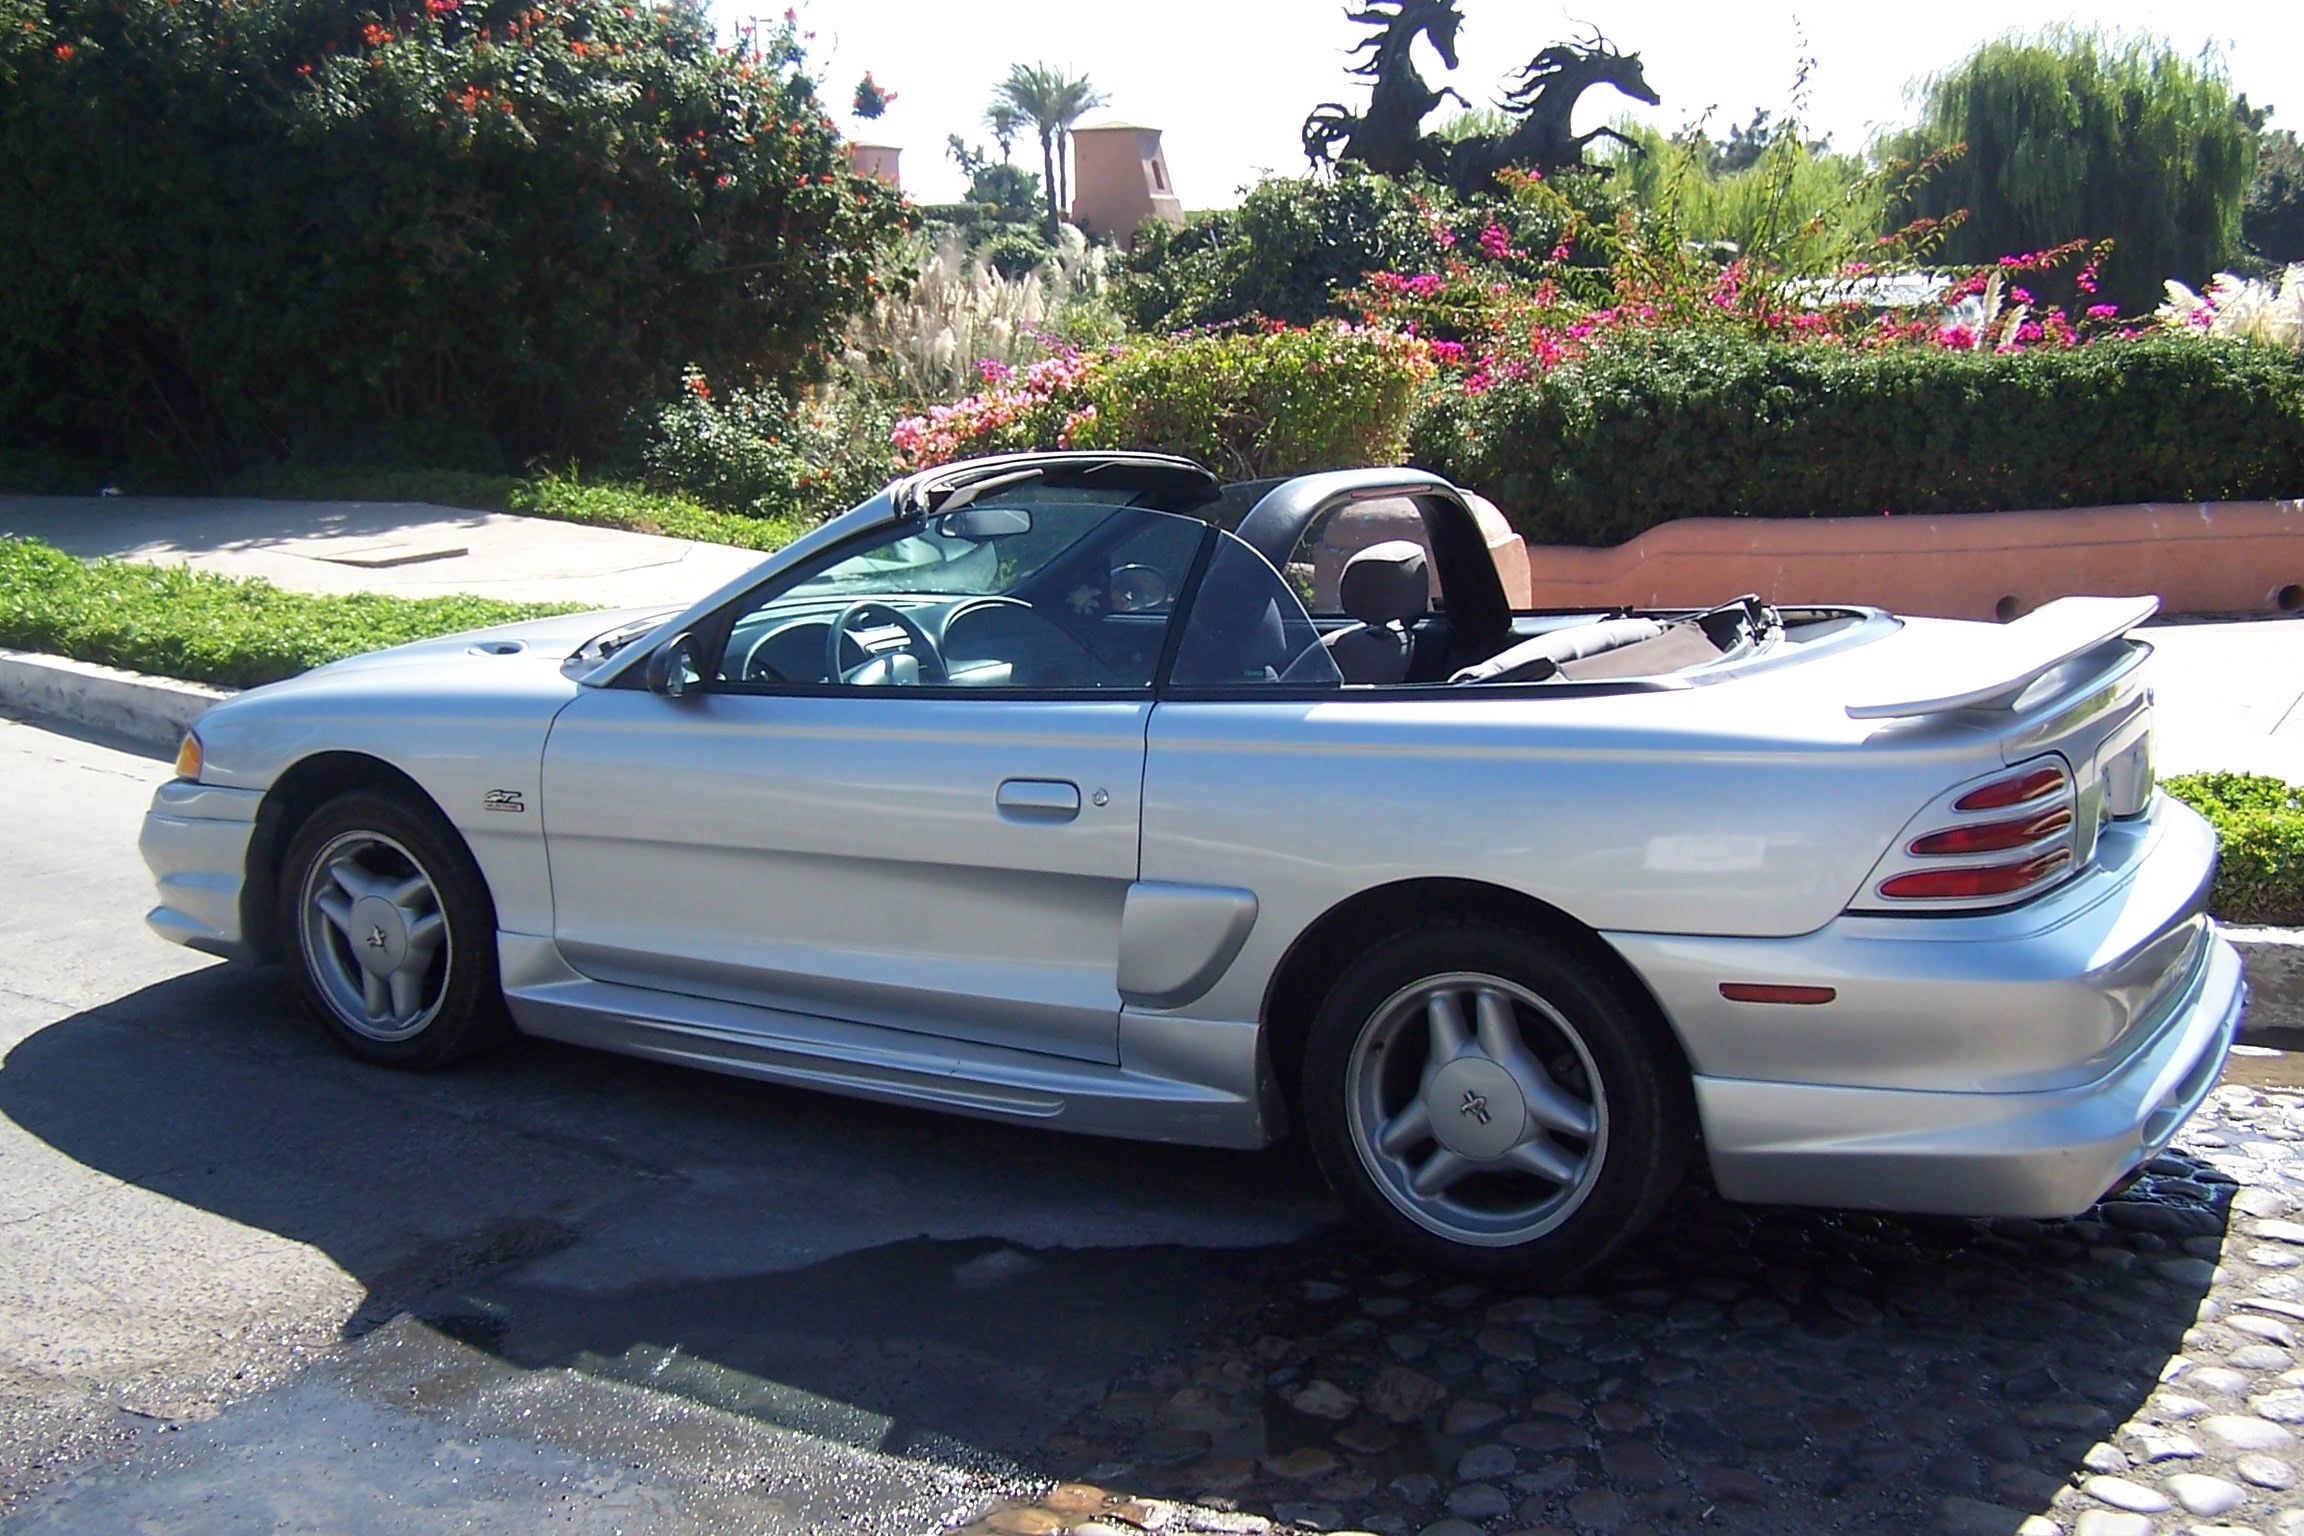 2002 ford mustang gt convertible ford mustang fourth generation wikipedia the free convertible top motor transmission fluid change ford se pinteres